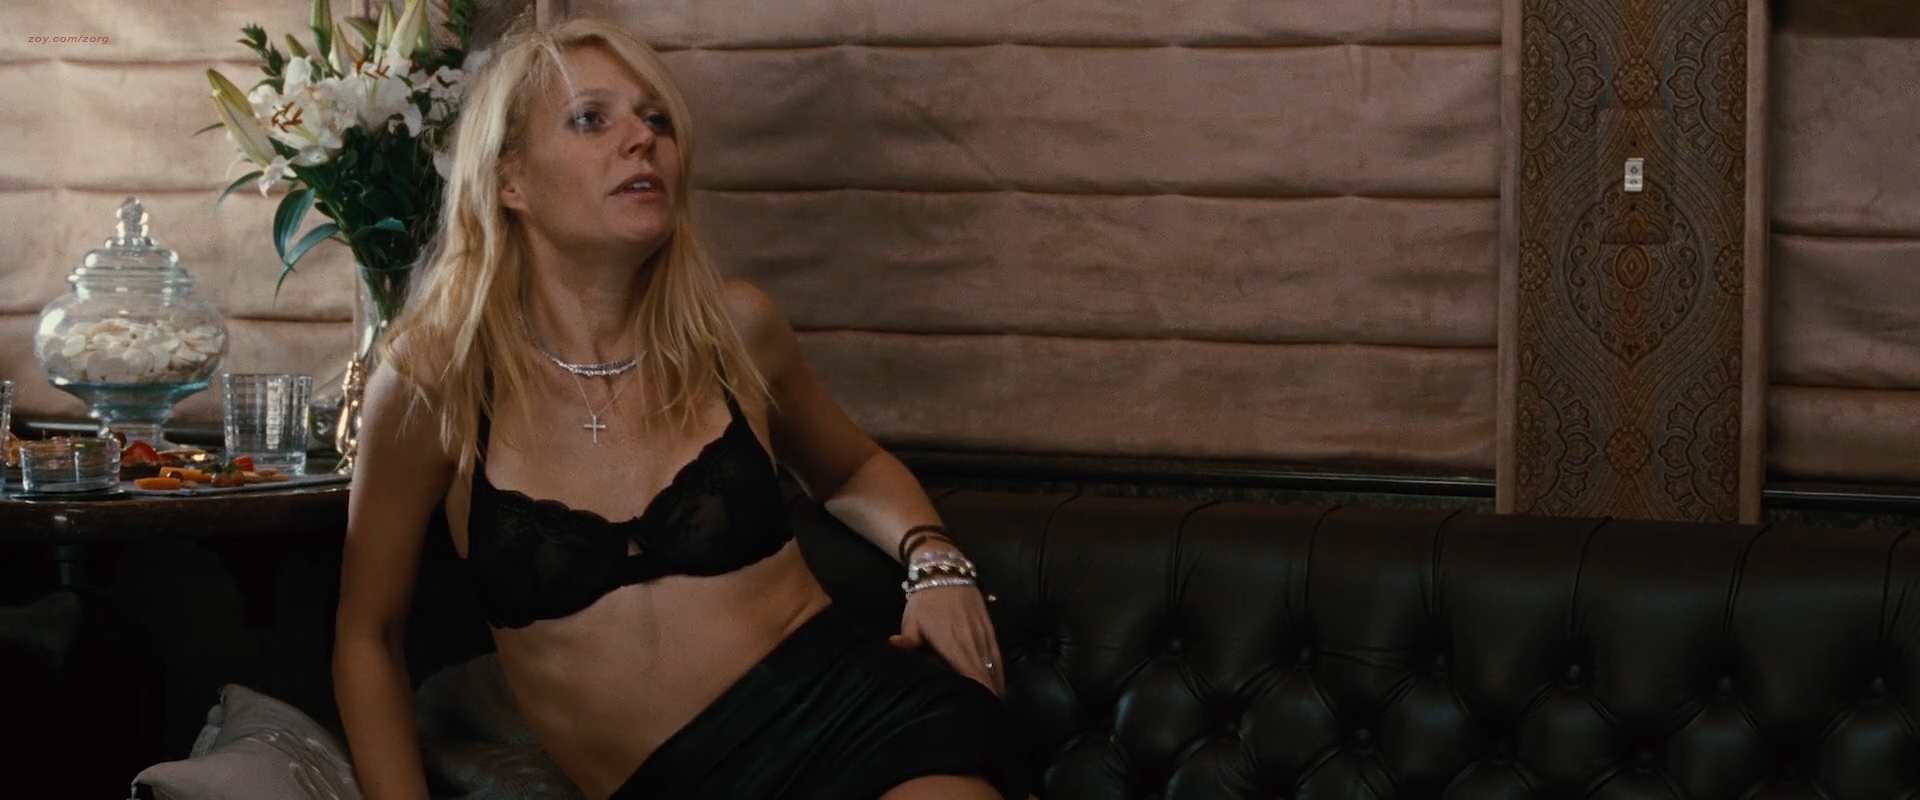 Leighton Meester hot and Gwyneth Paltrow sexy in lingerie - Country Strong (2010) hd1080p (3)